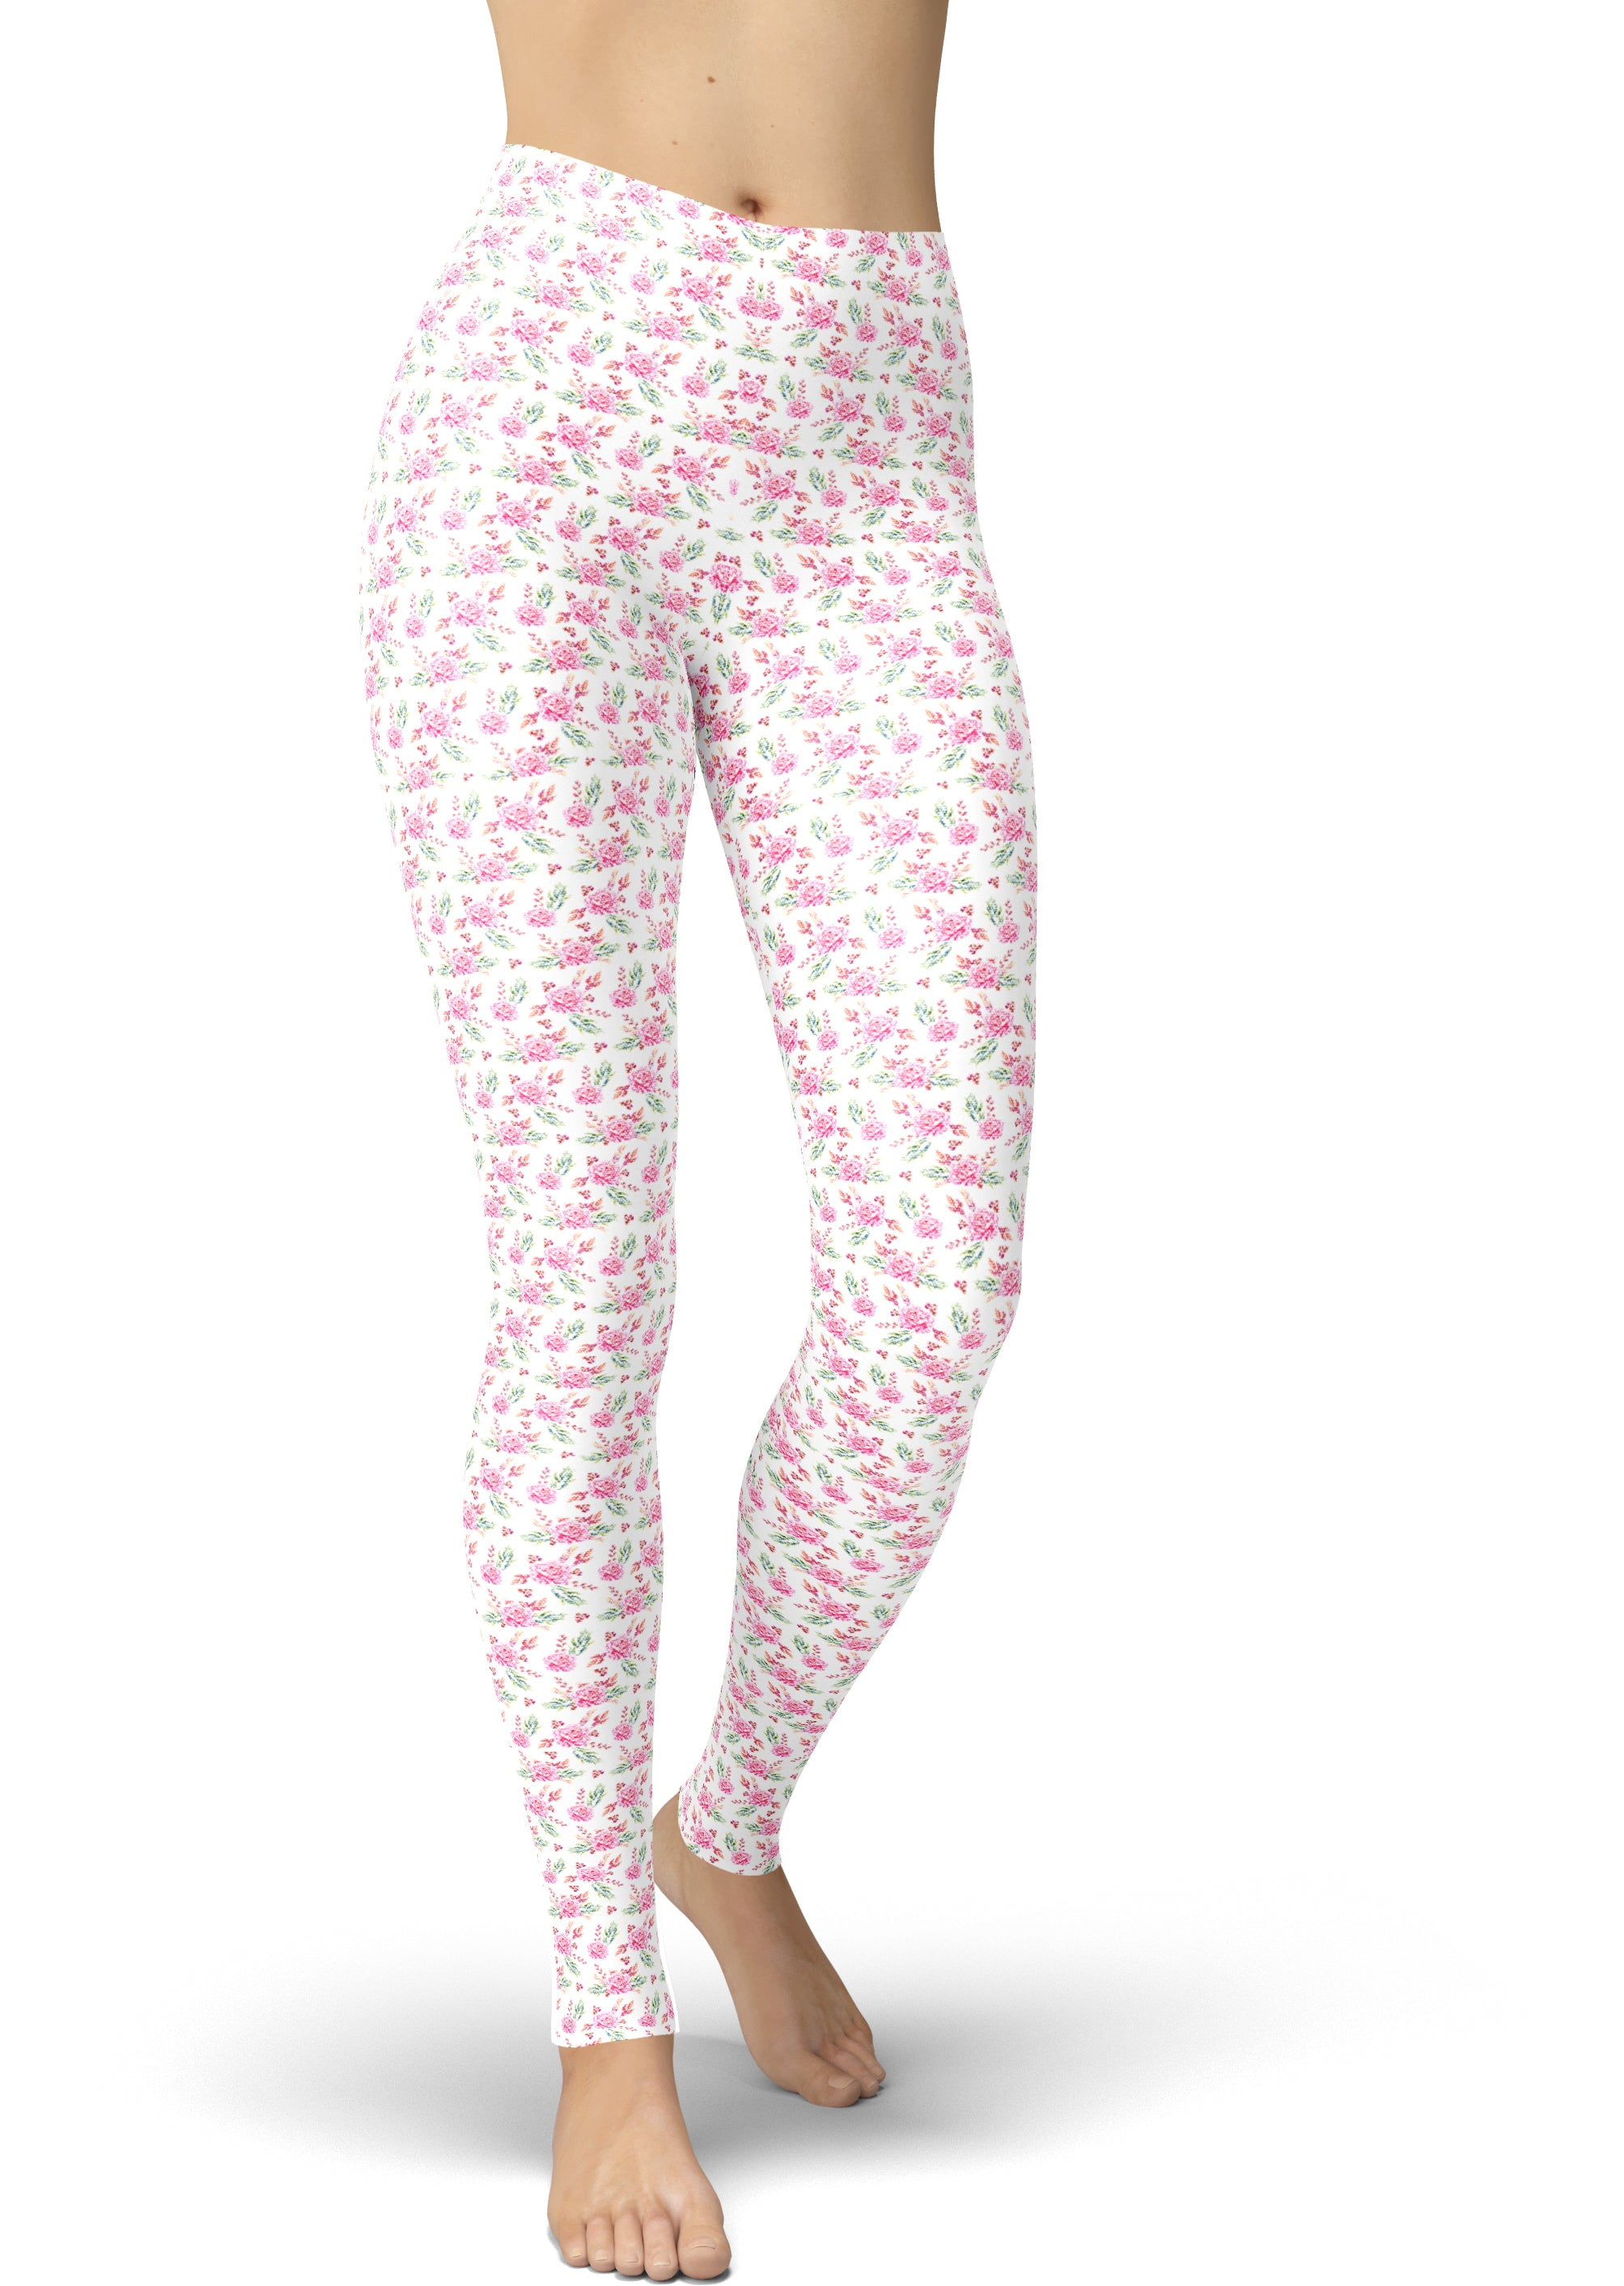 Milk & Rose Leggings